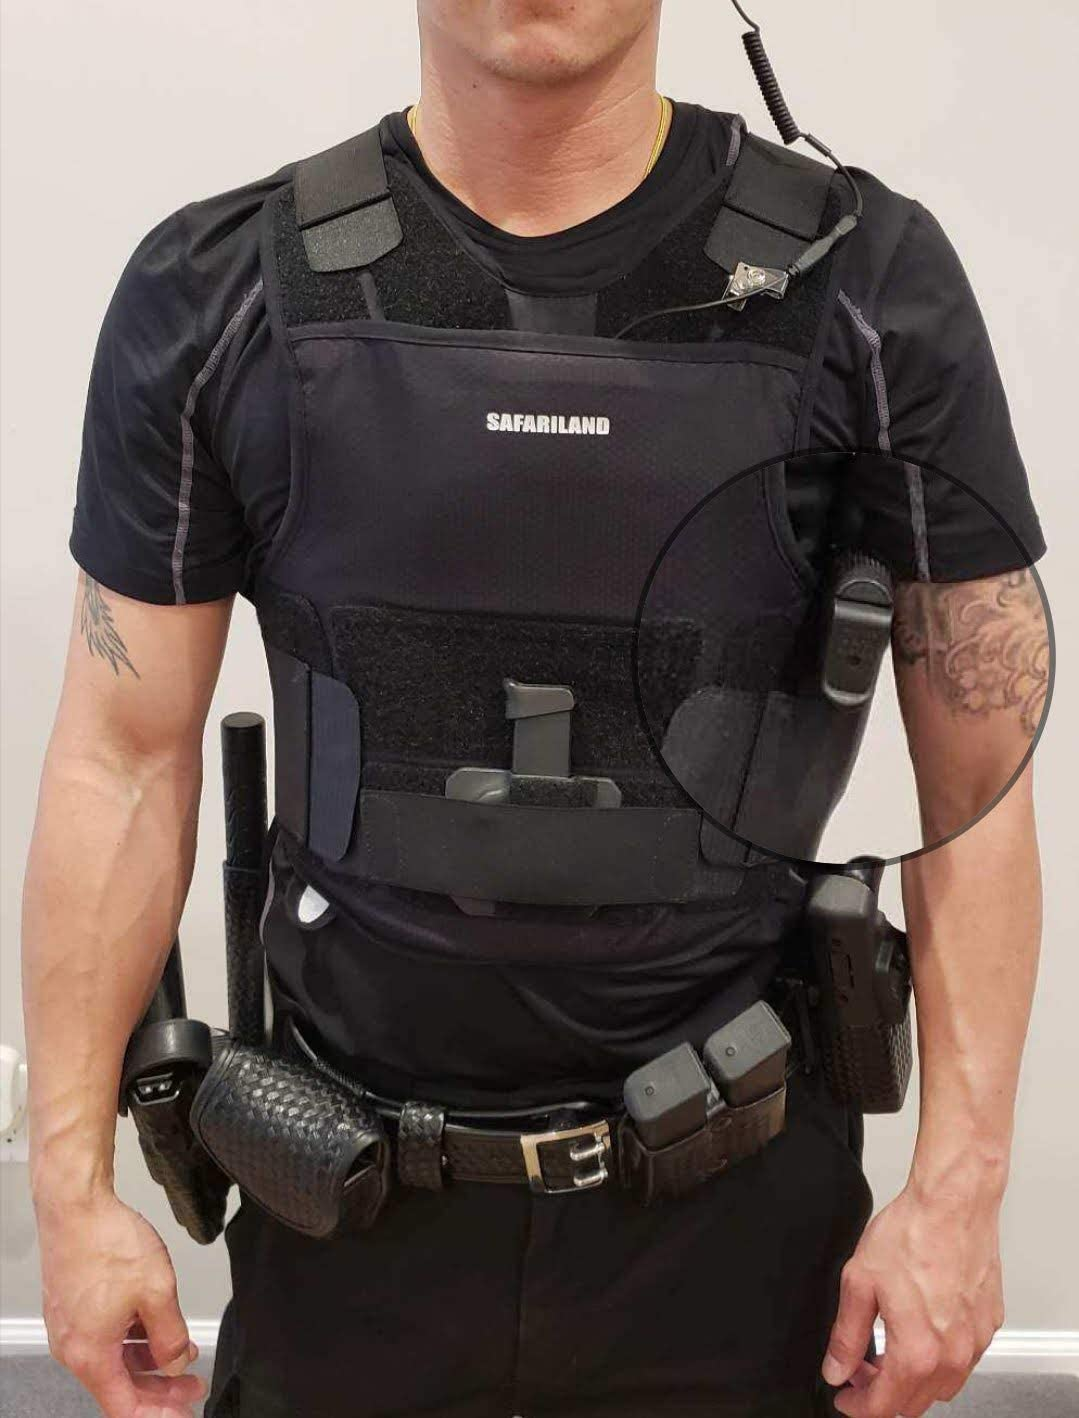 Vest holster for glock 27 forex demo account competition